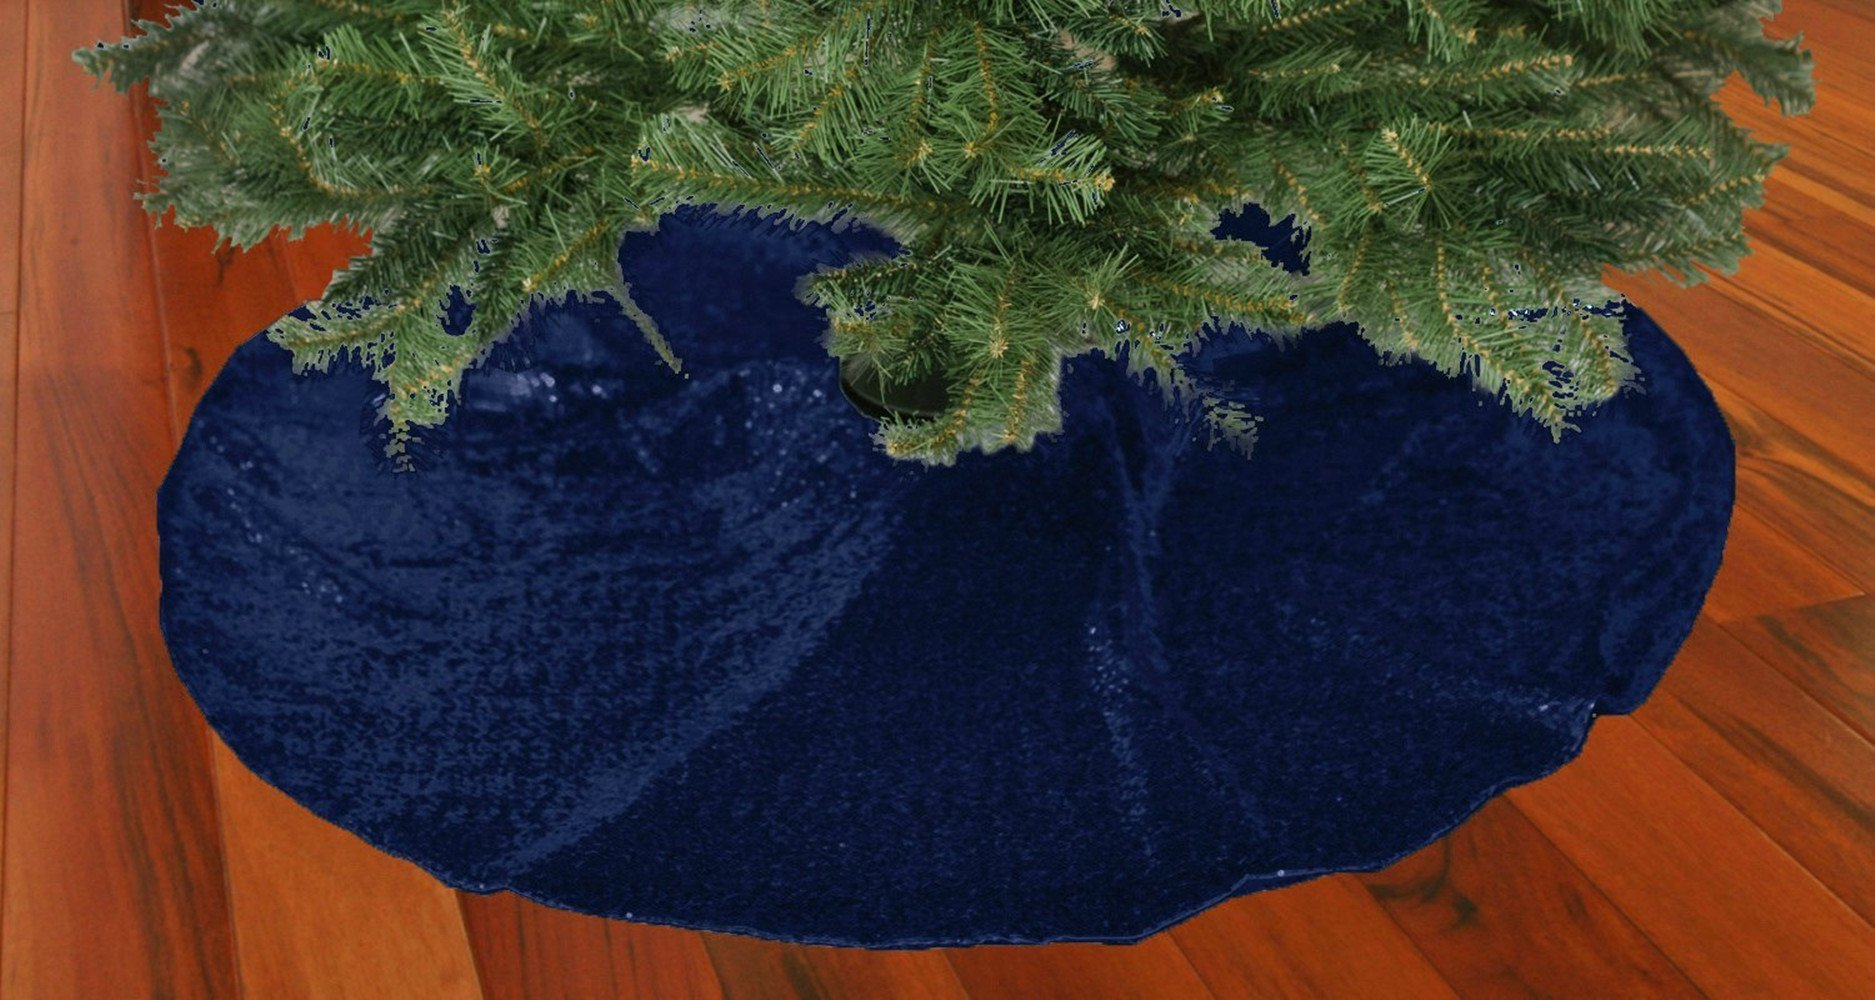 TRLYC 50-Inch Round Embroidery Sequin Christmas Tree Skirt --Navy Blue